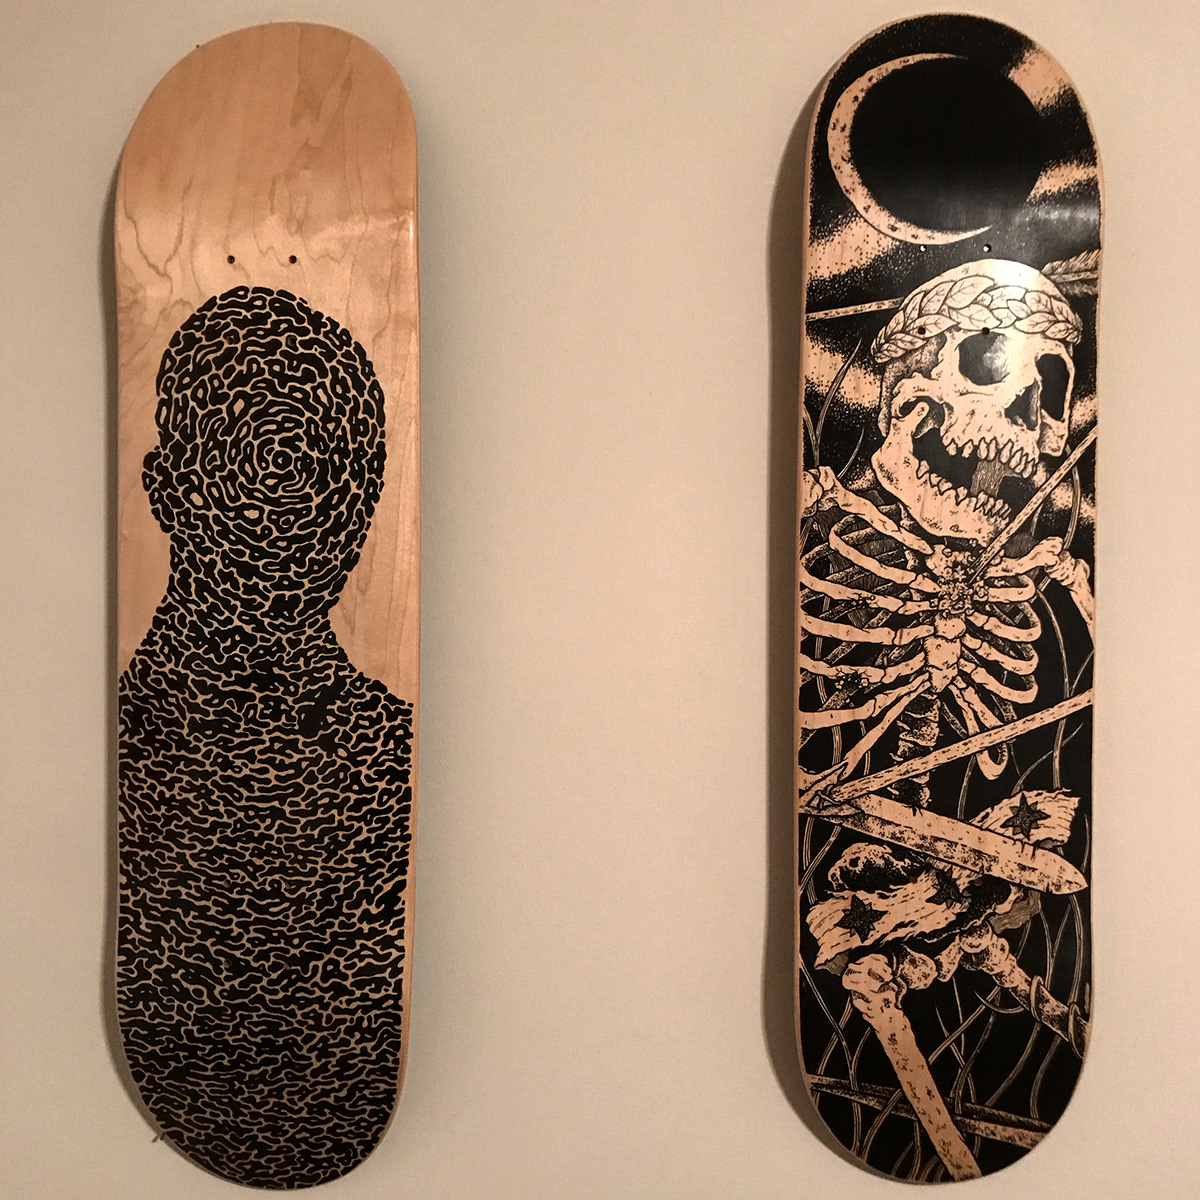 The Death of Orion Skate Deck